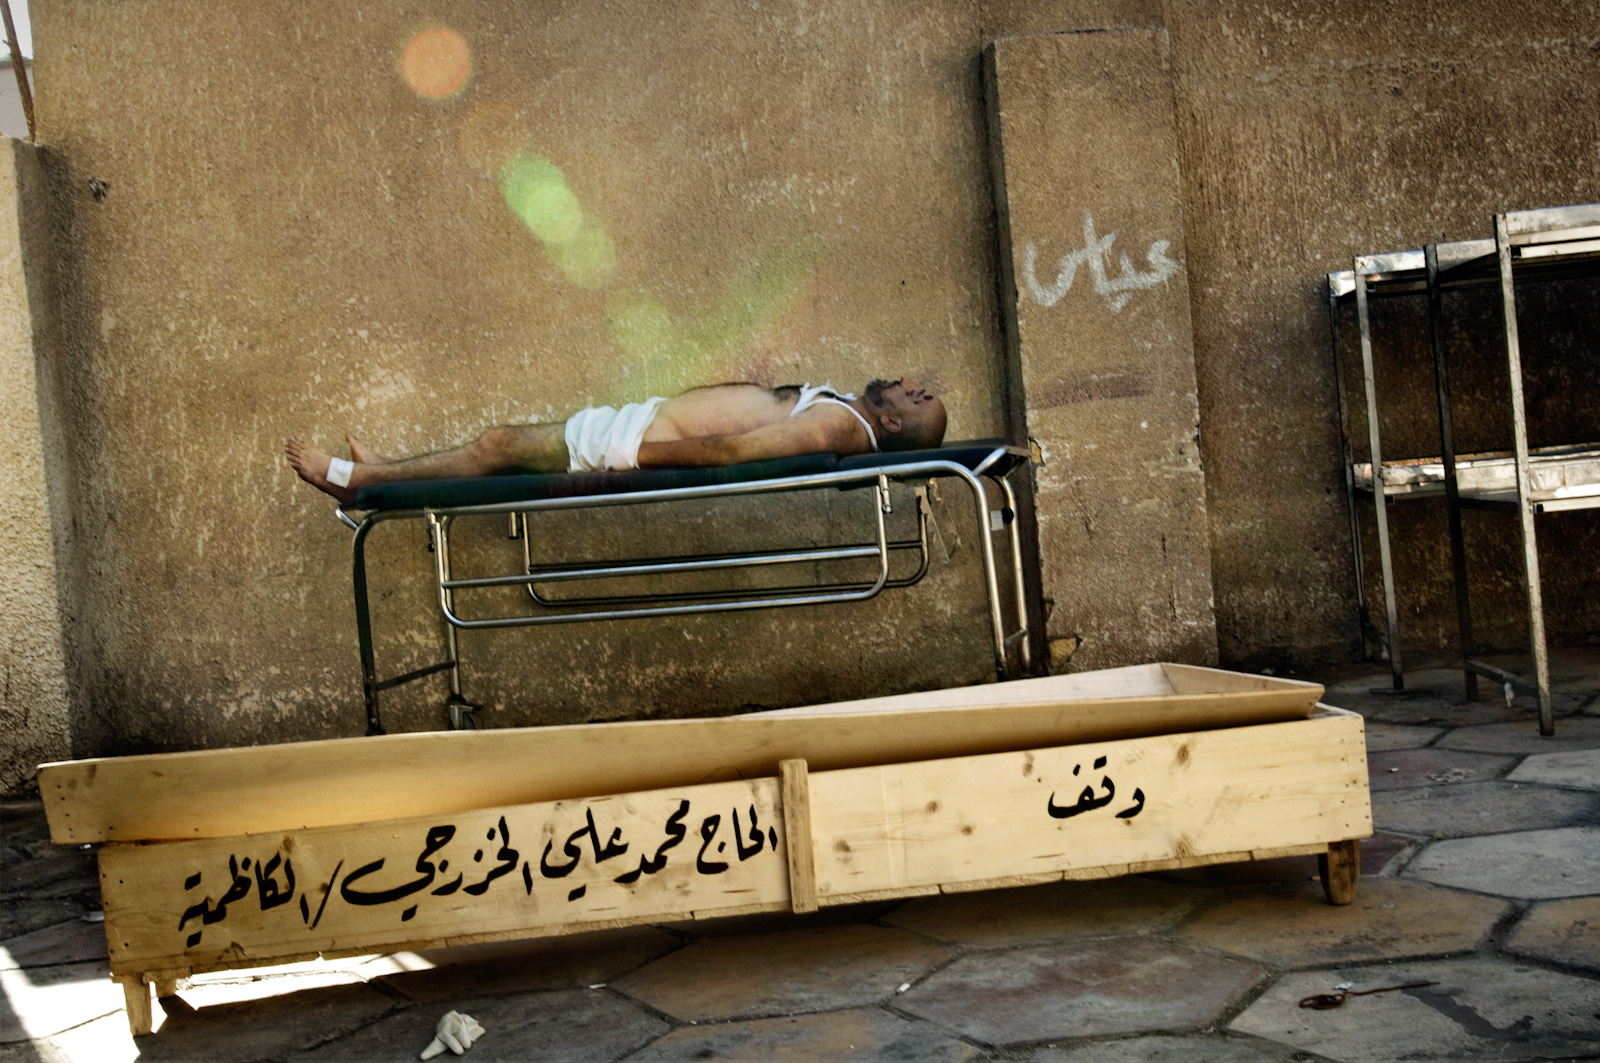 A body rests on a gurney at the Yarmouk hospital morgue in Baghdad, Iraq on July 26, 2006. People make a pilgrimage here every day in search of lost relatives that have disappeared during the night. In the previous night, 19 bodies were found in different neighborhoods throughout the city as a result of the sectarian bloodshed that is plaguing the country.